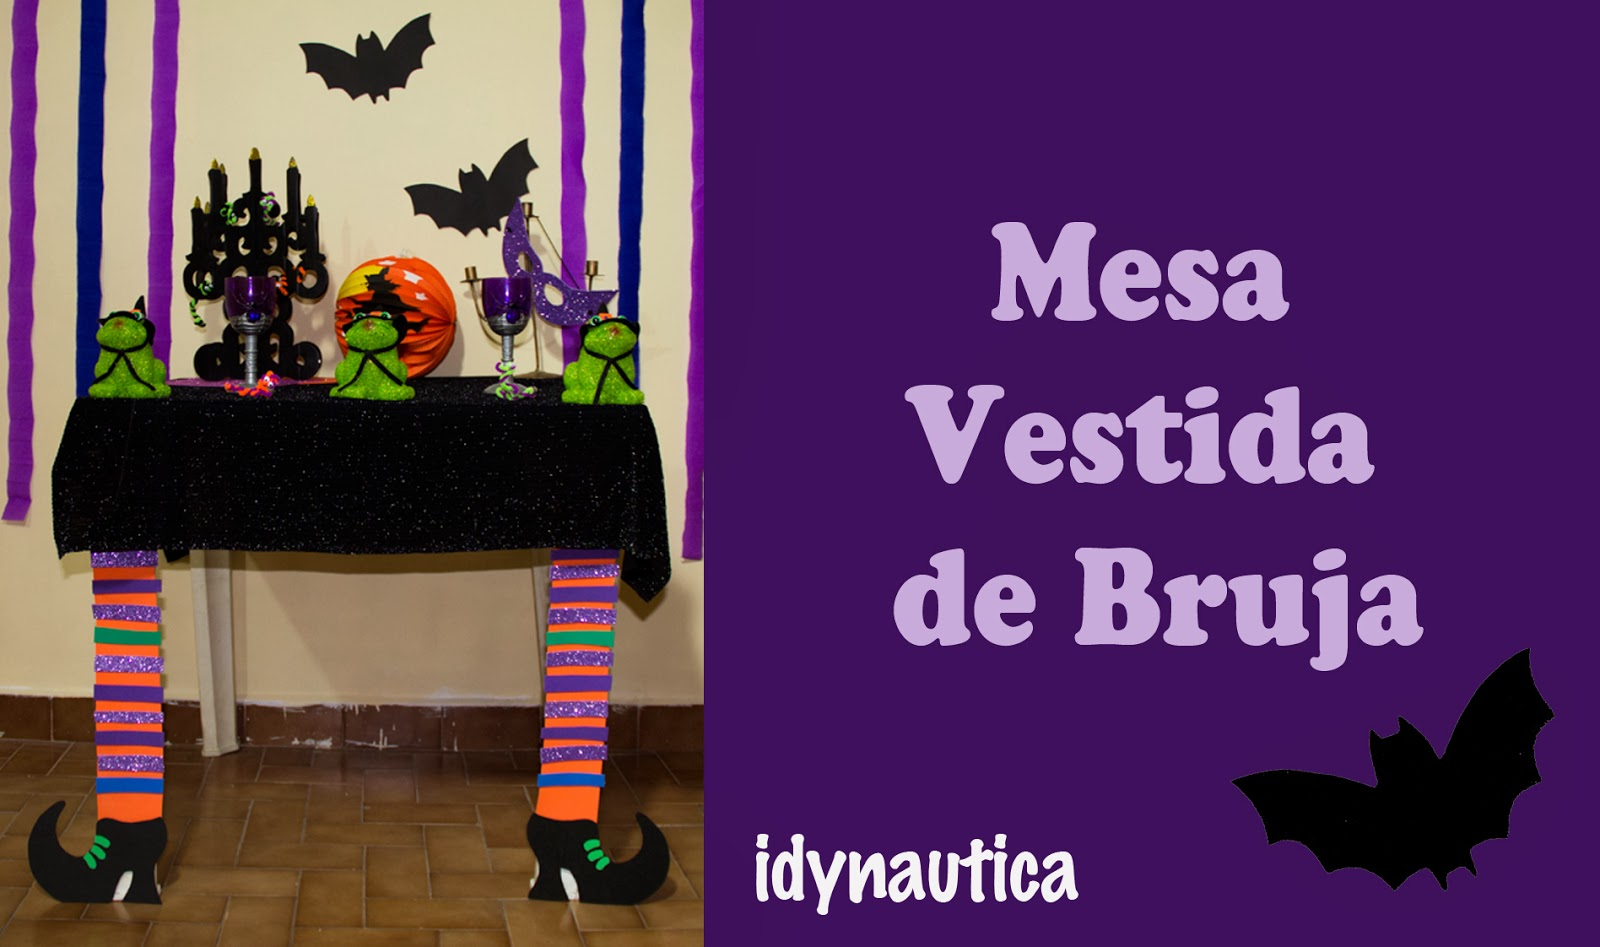 Decoraciones De Halloween Faciles Idynautica Decoraciones Faciles De Ultimo Momento Halloween